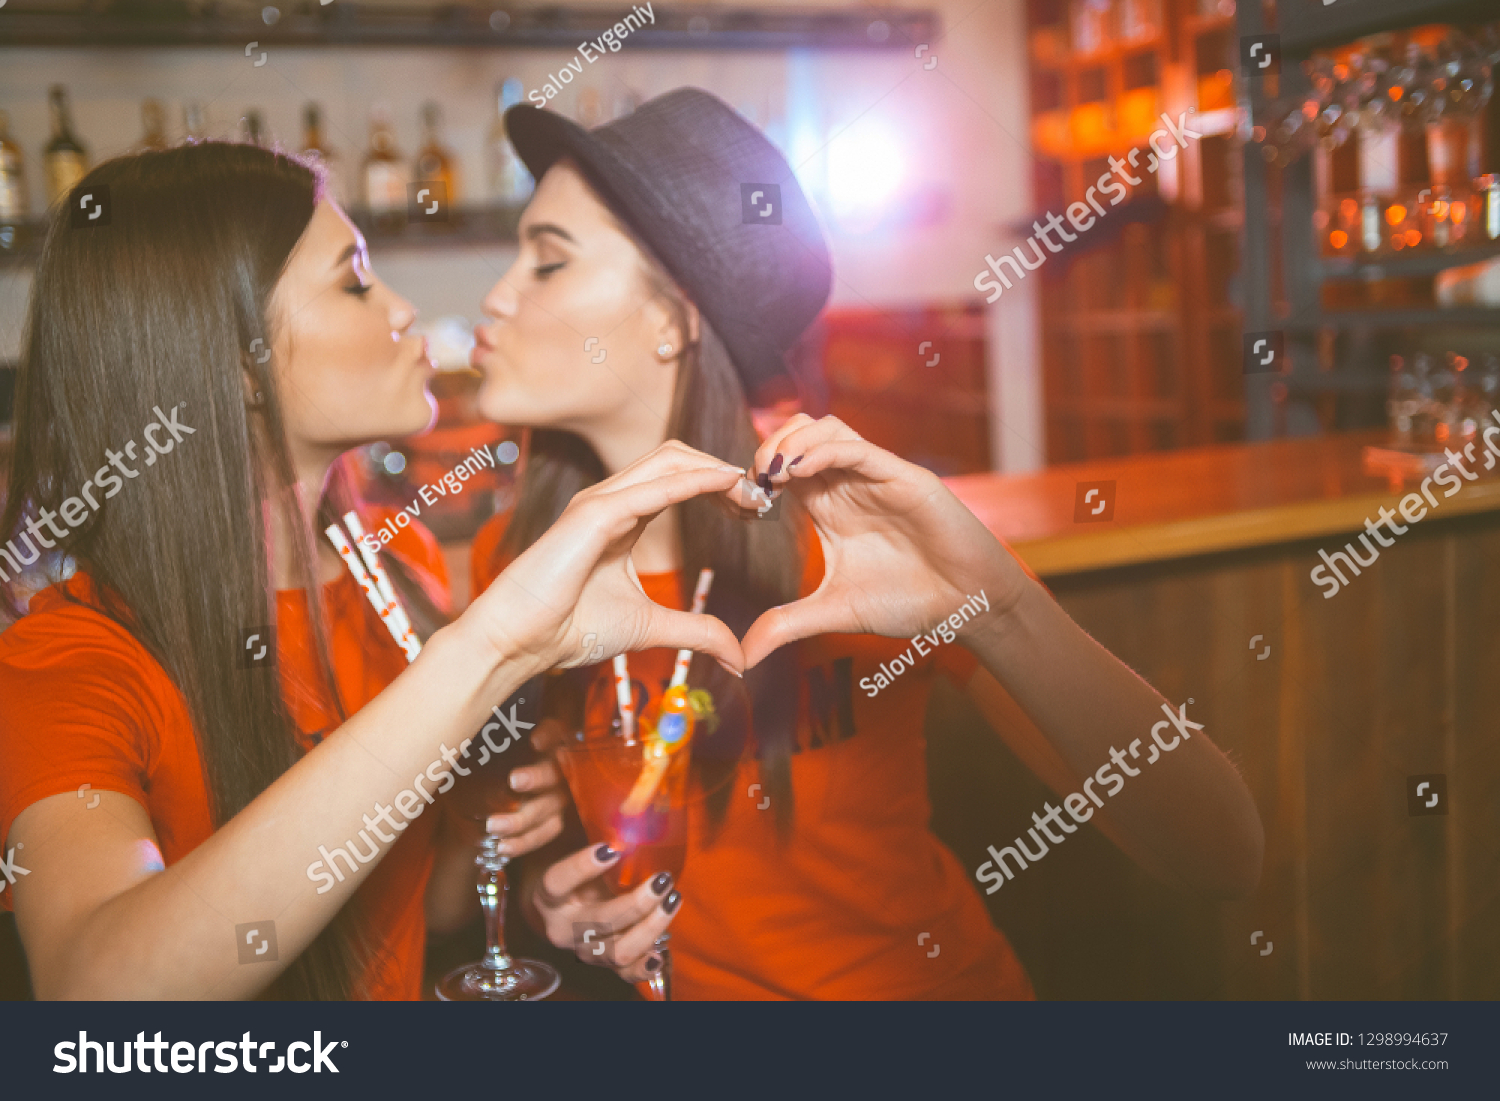 Two young lesbian girls kiss and make a heart with their hands at a club  party